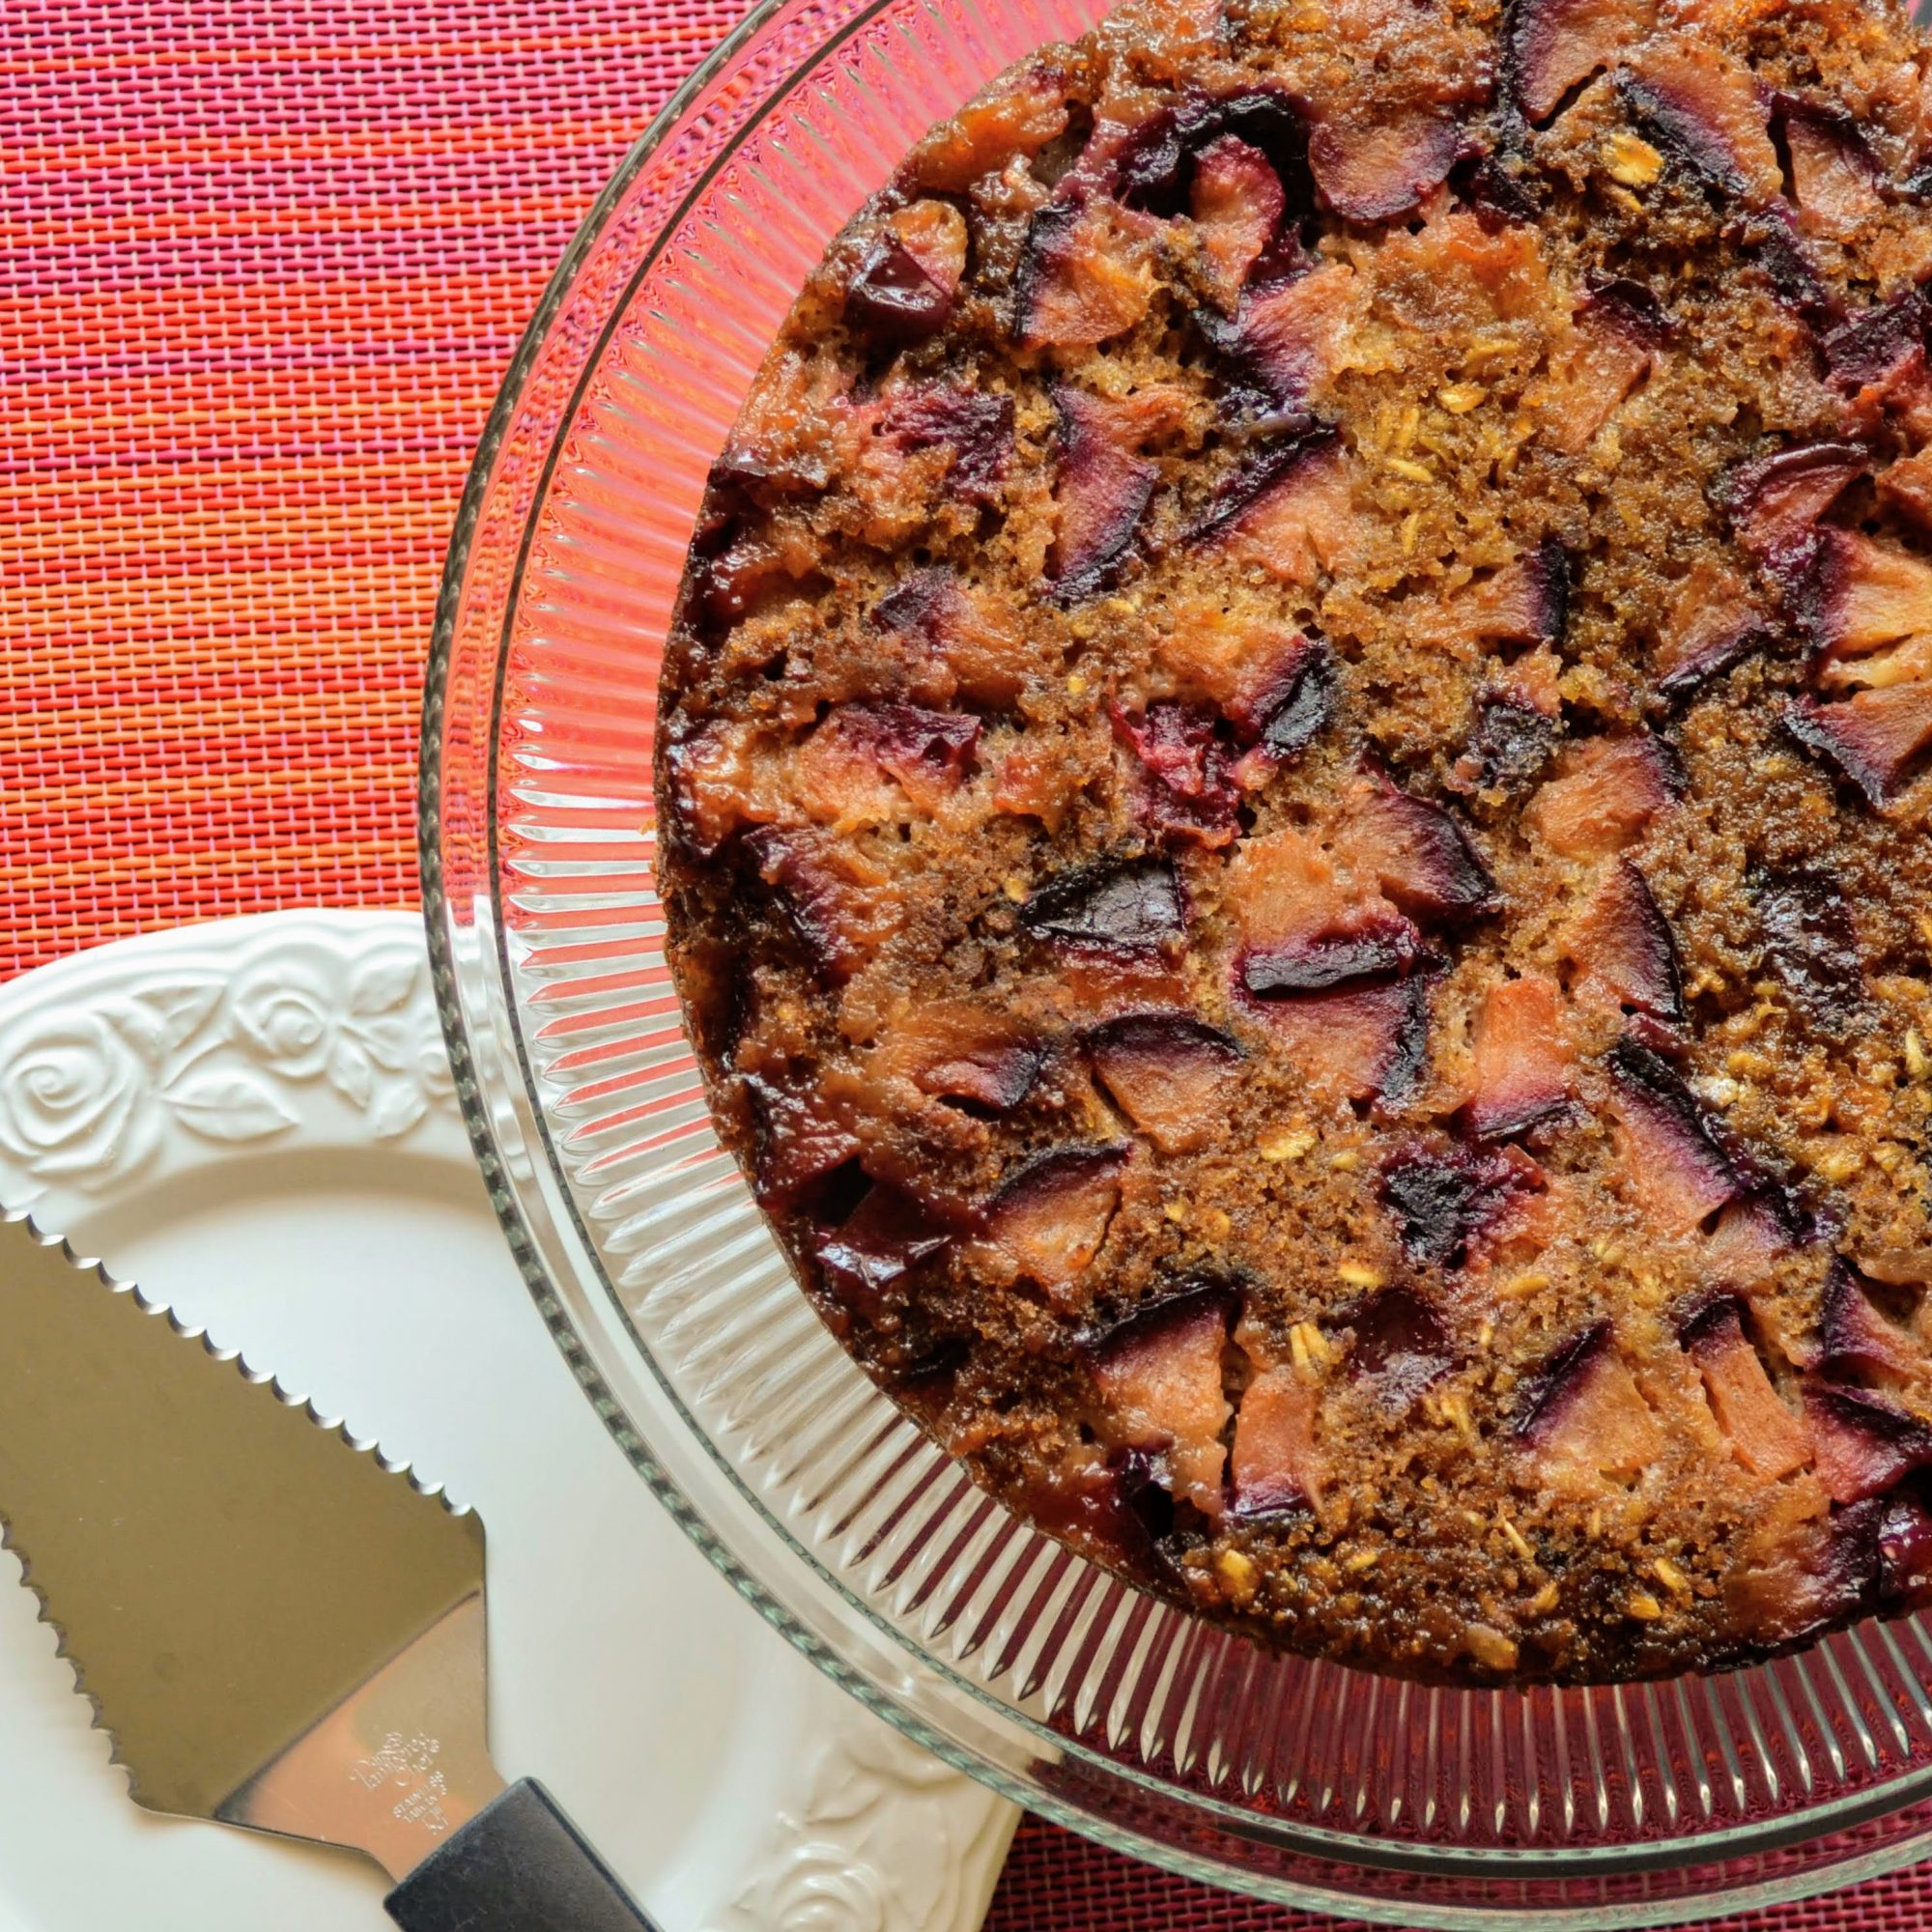 Spiced Plum Upside-Down Cake with Oats on a glass plate